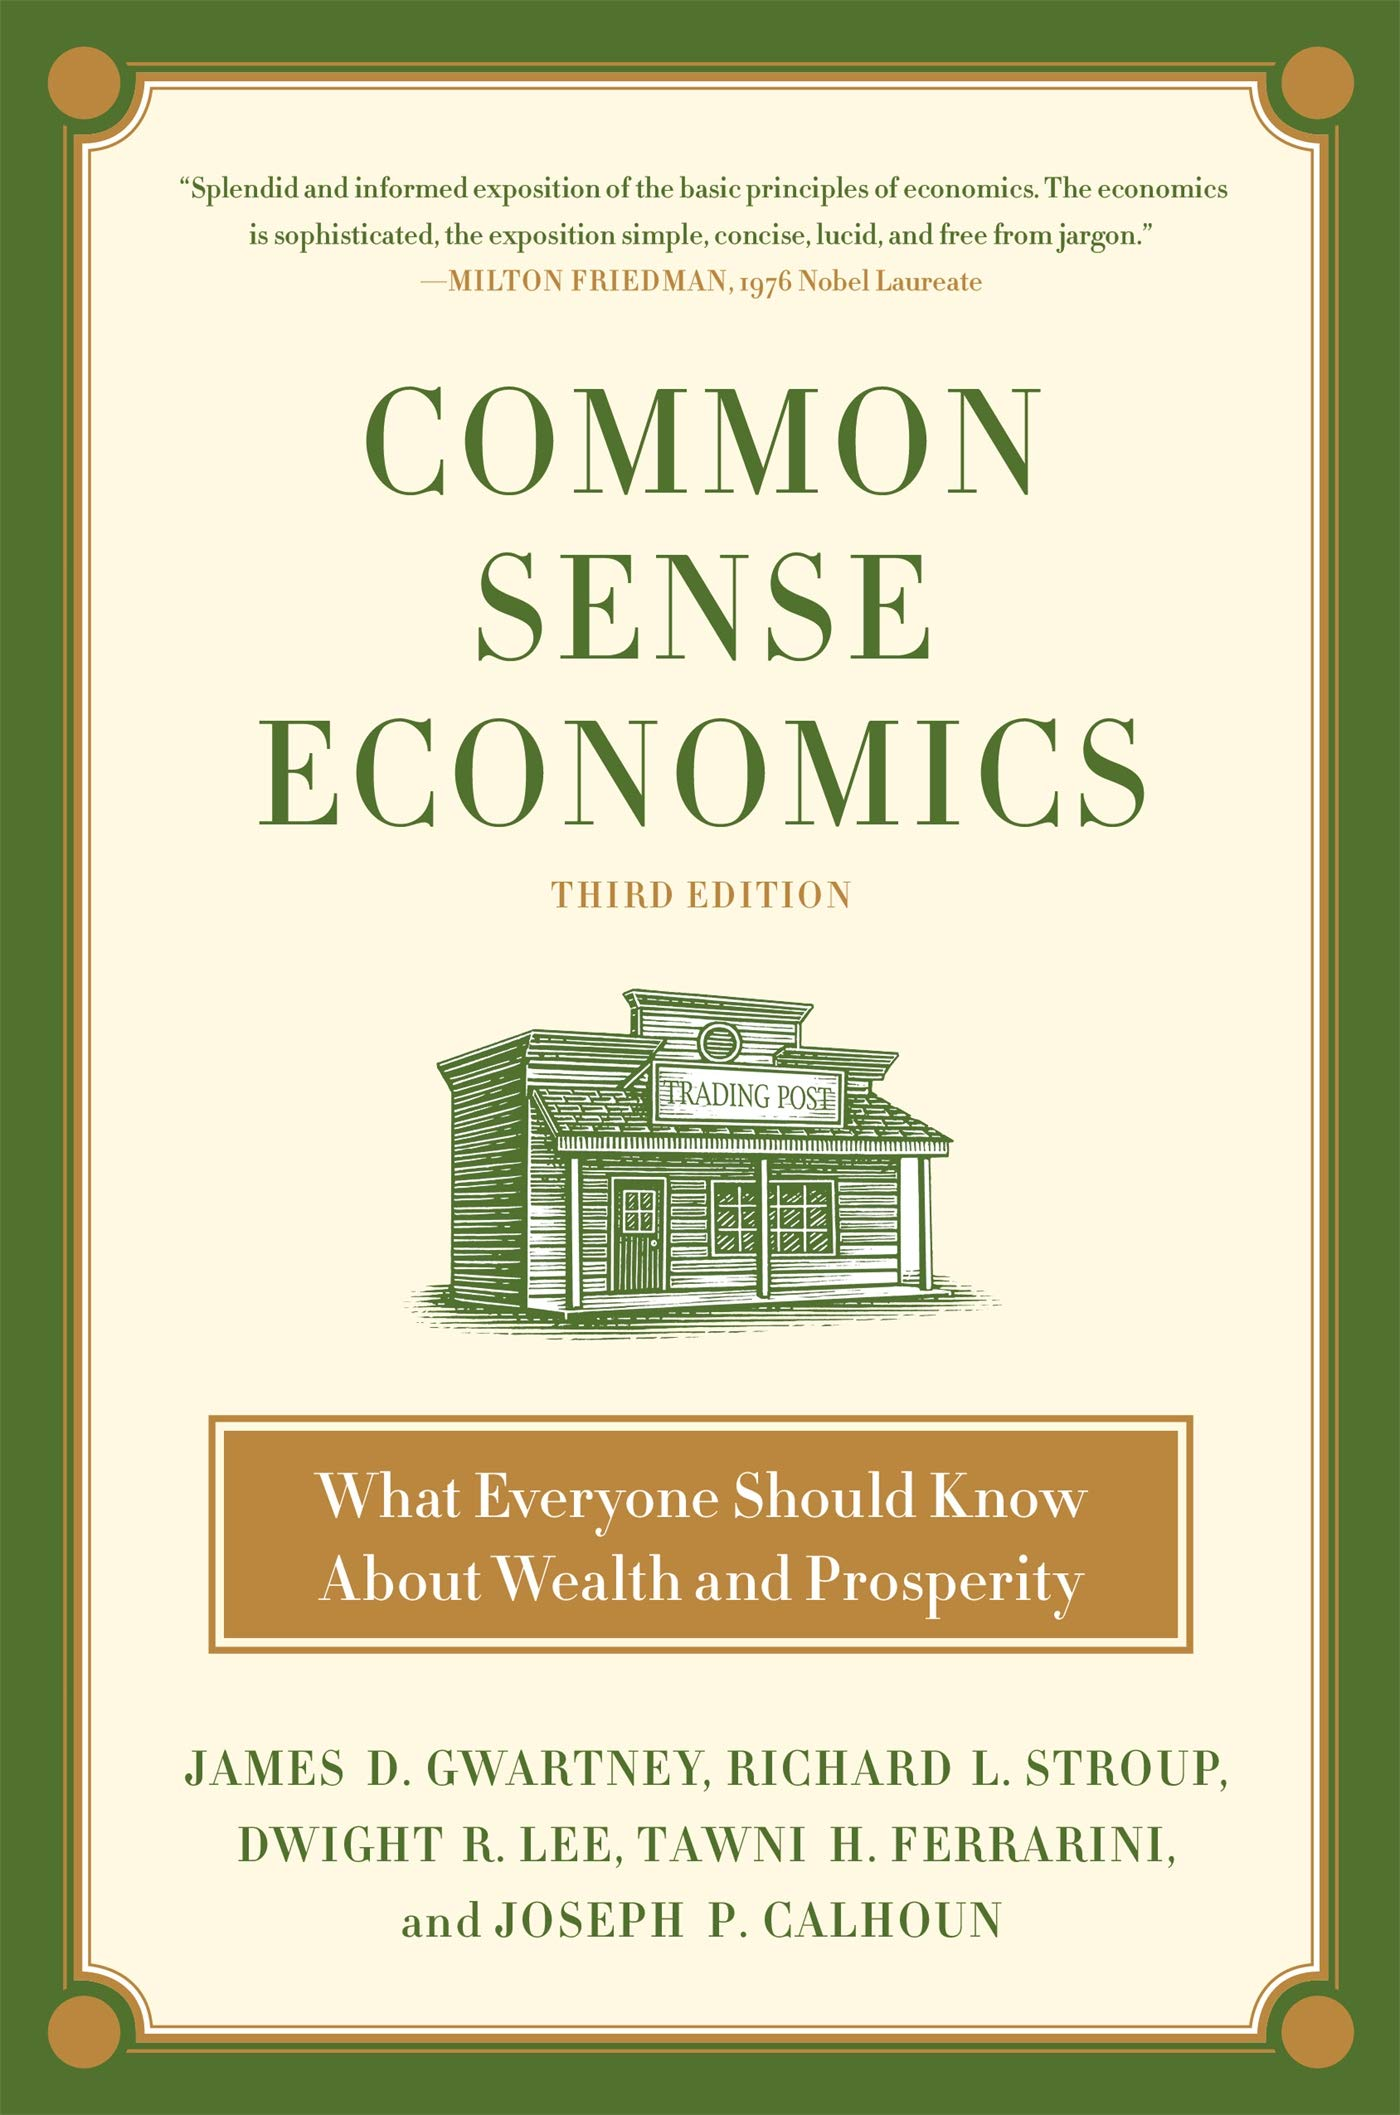 Common Sense Economics What Everyone Should Know About Wealth And Prosperity By James D Gwartney